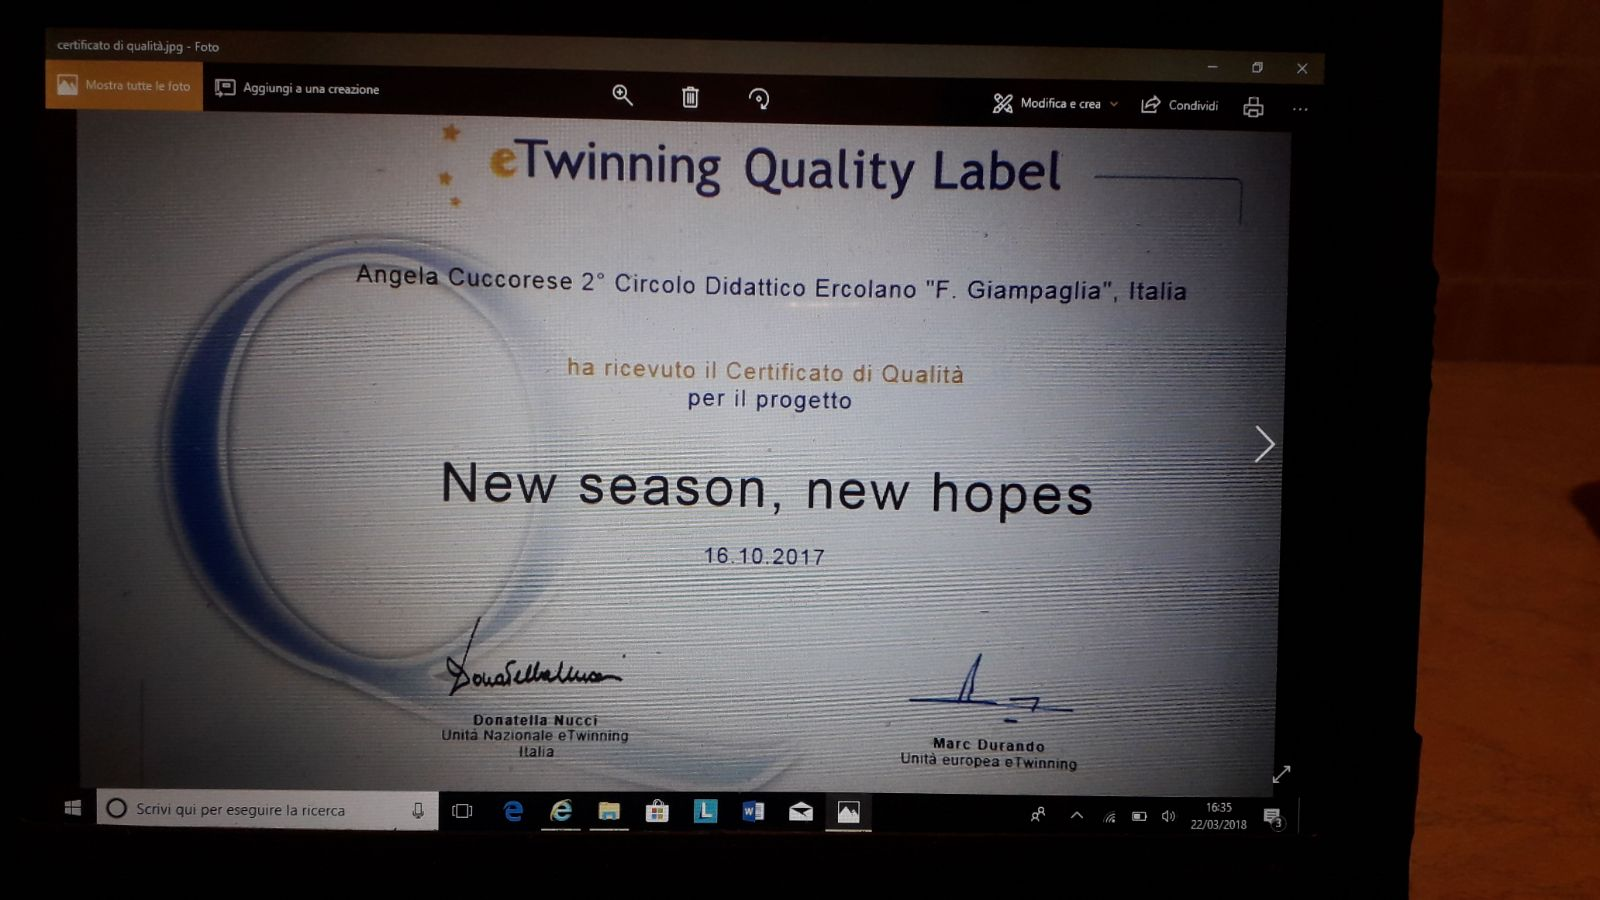 E-Twinning Quality Label